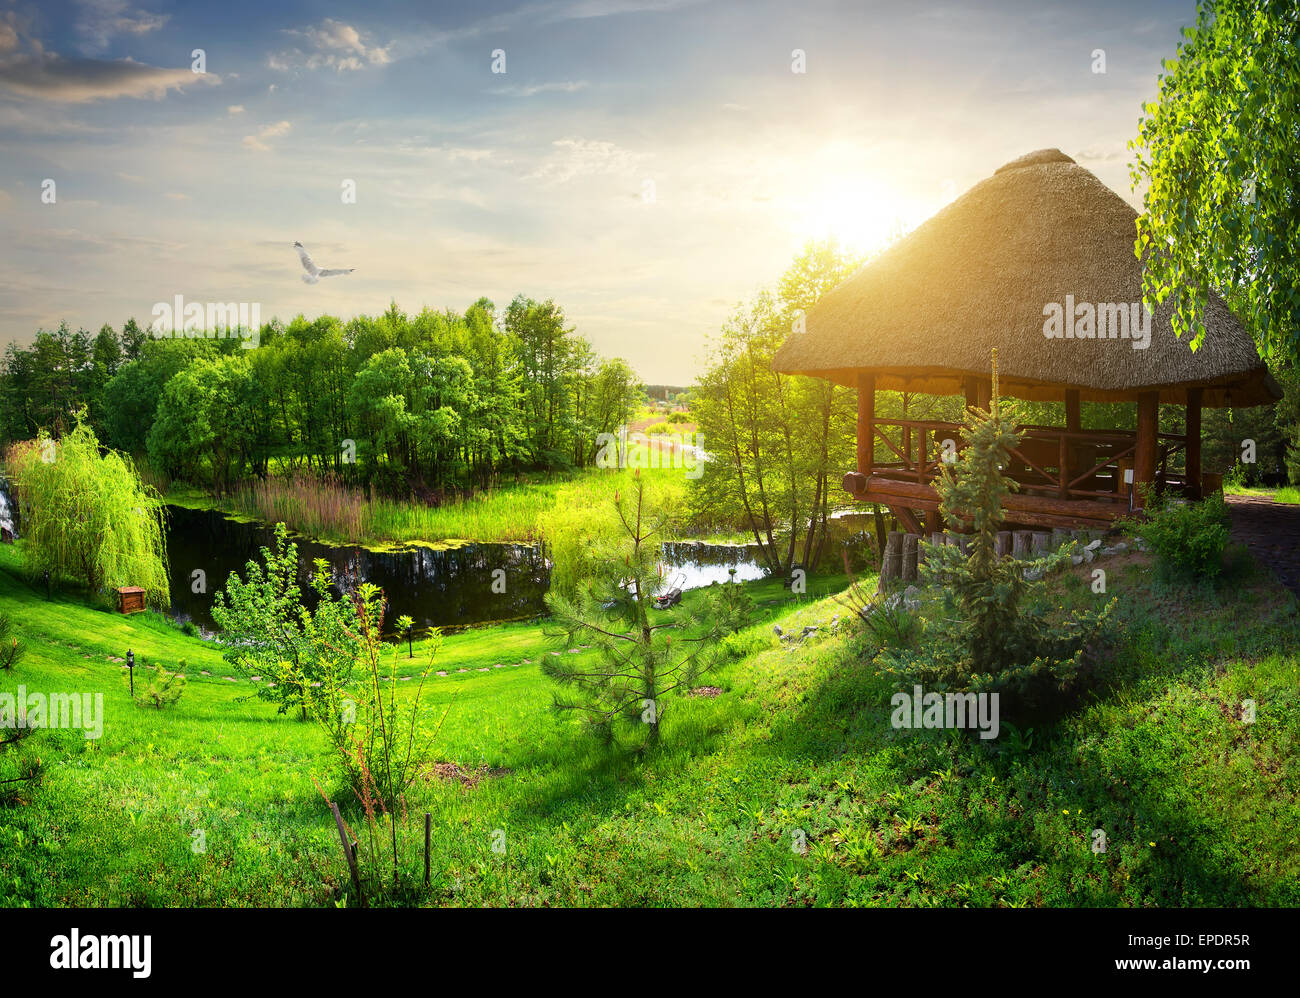 Wooden arbour with thatched roof near river - Stock Image